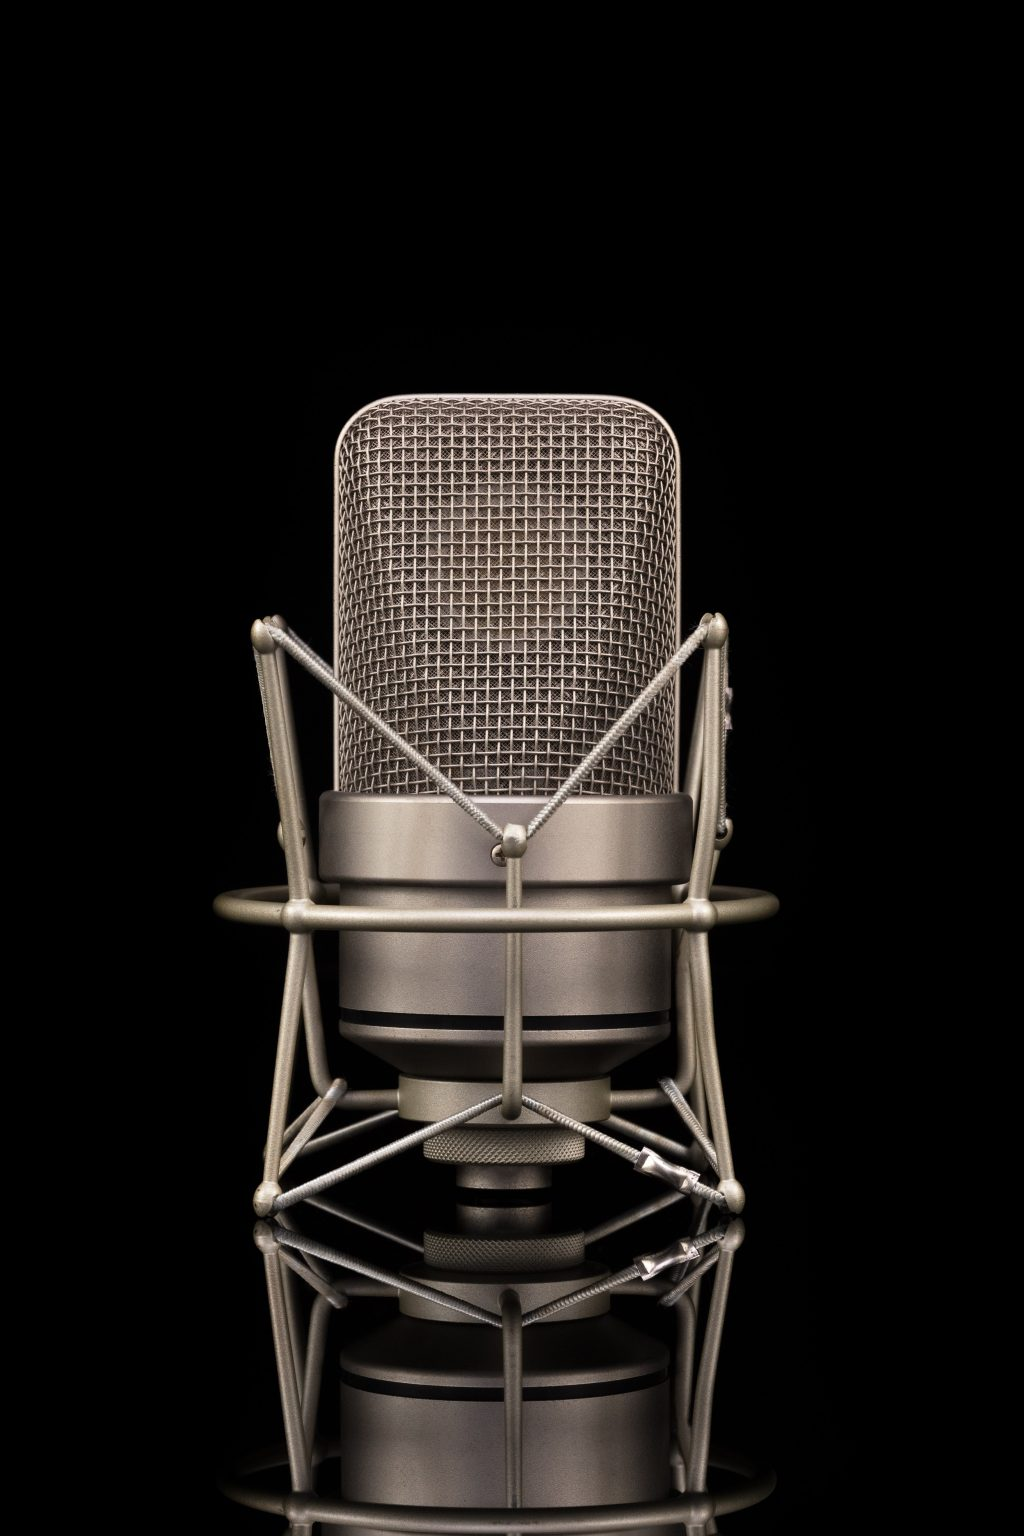 gray-condenser-microphone-3532003